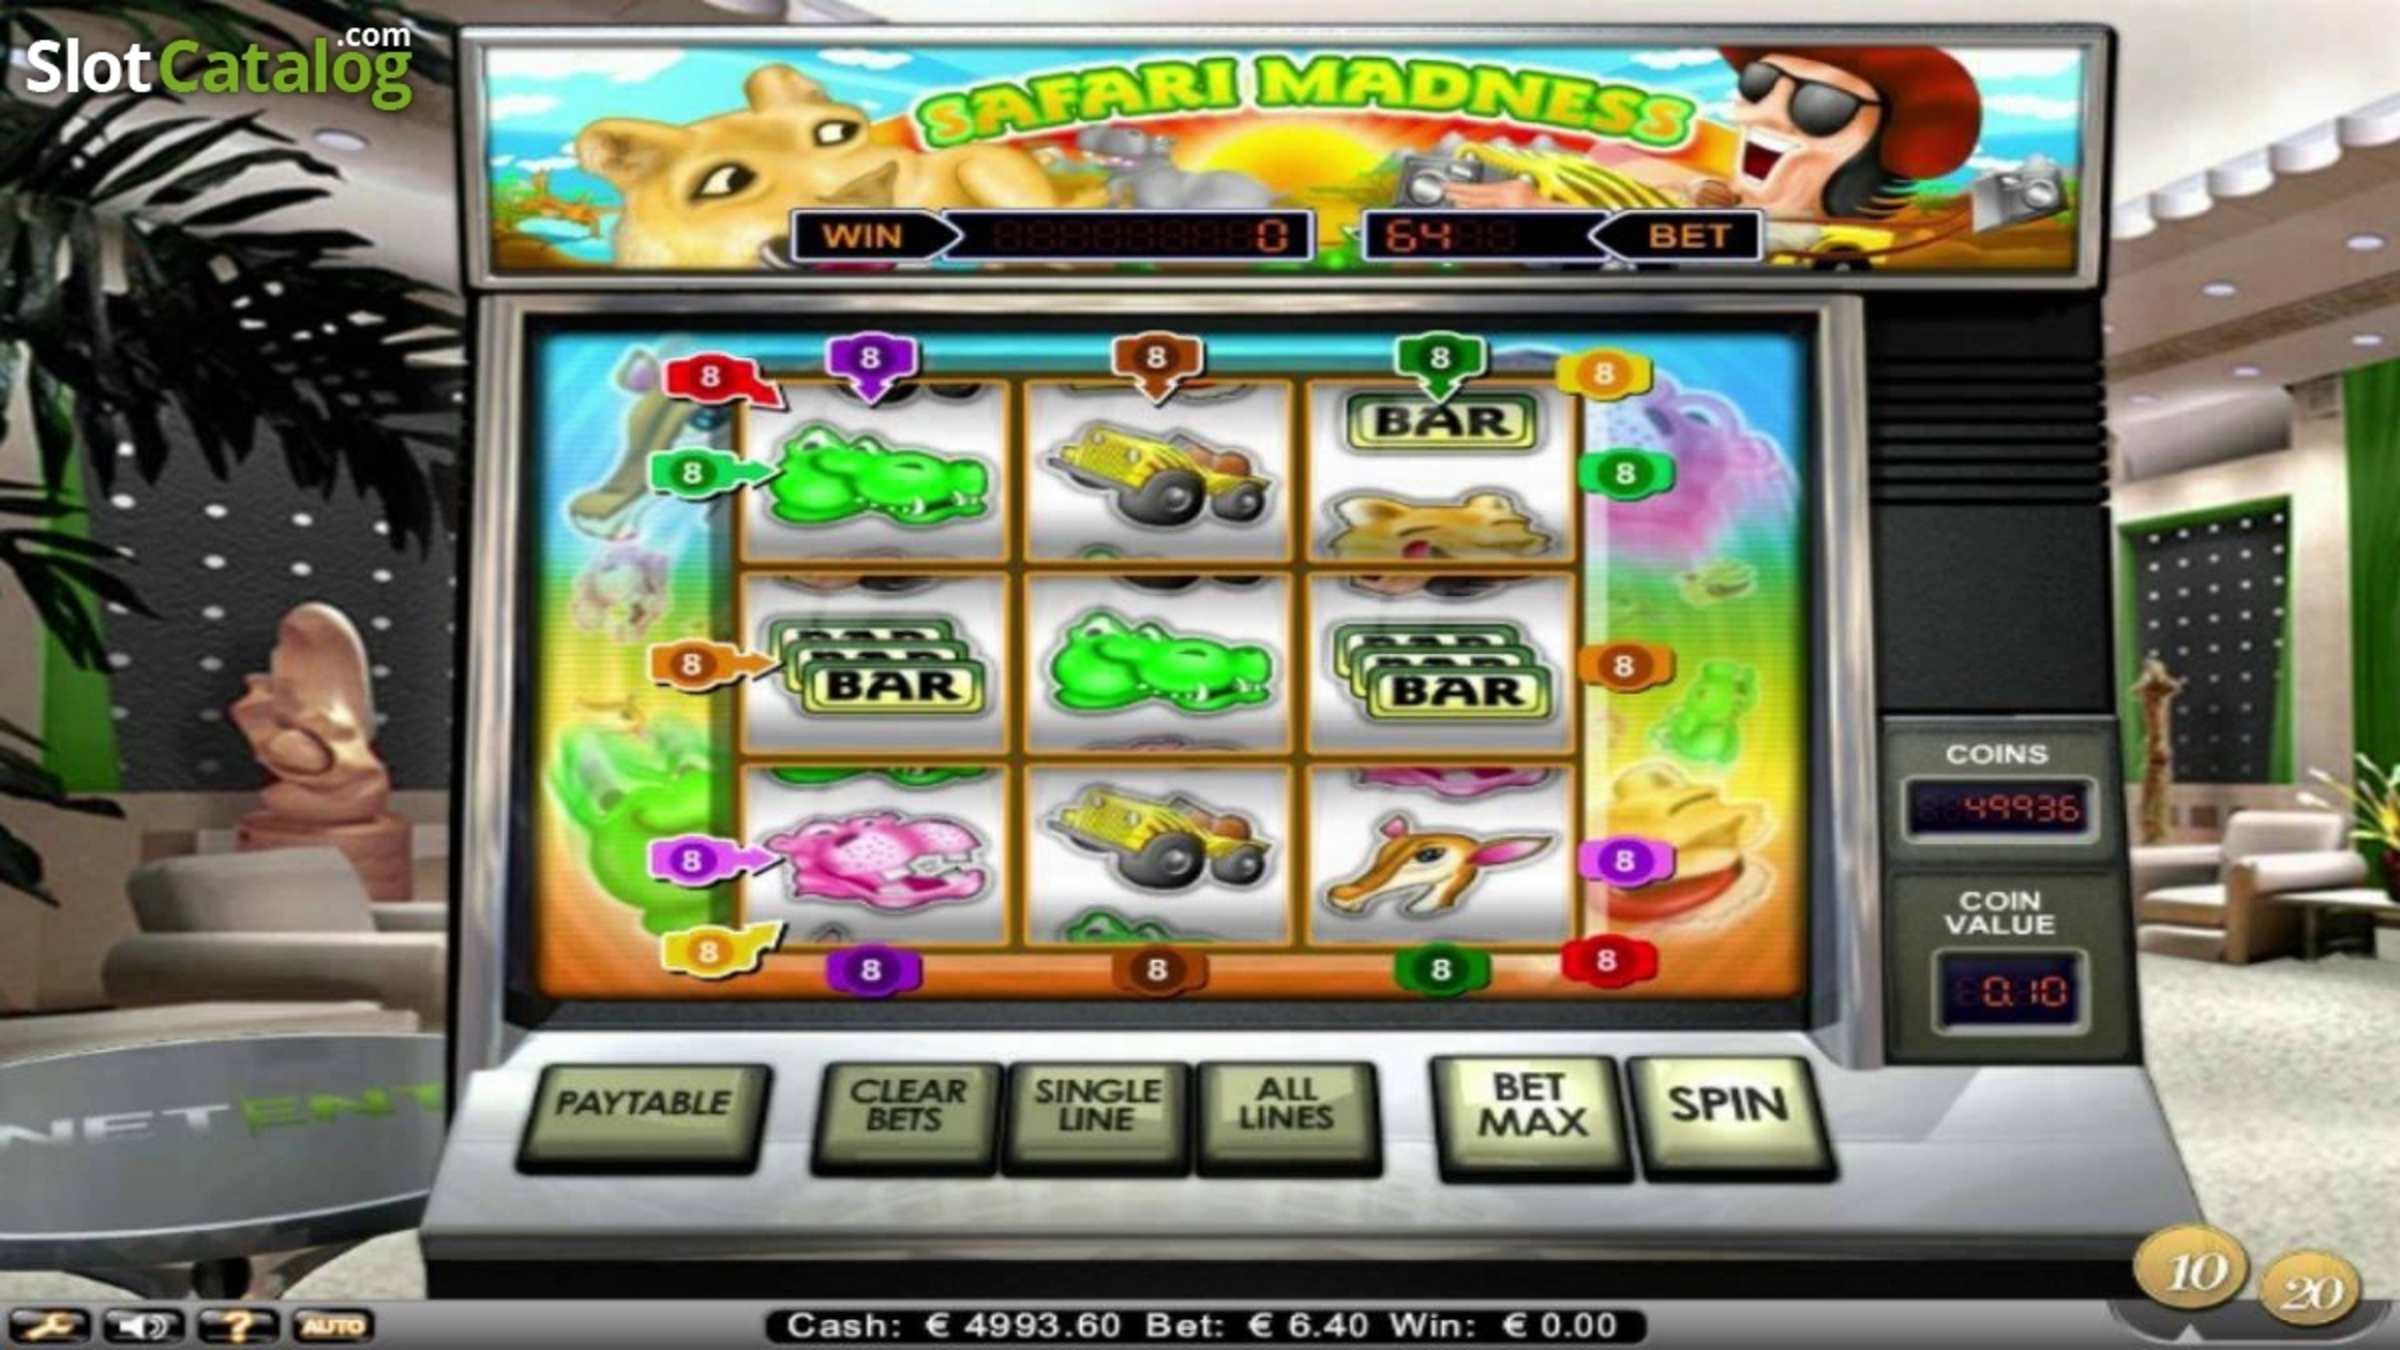 The Safari Madness Online Slot Demo Game by NetEnt